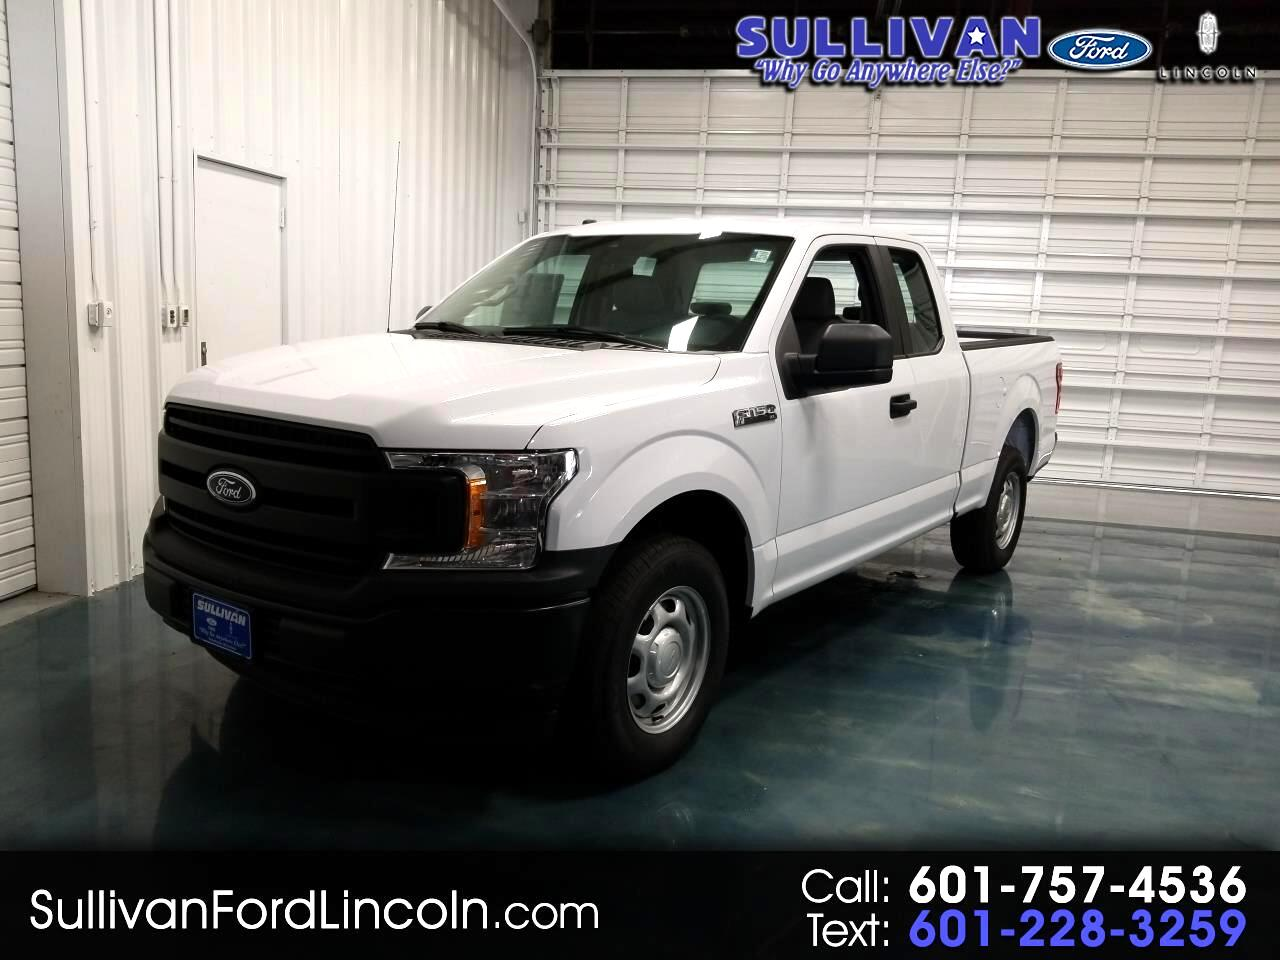 2019 Ford F-150 Supercab 139